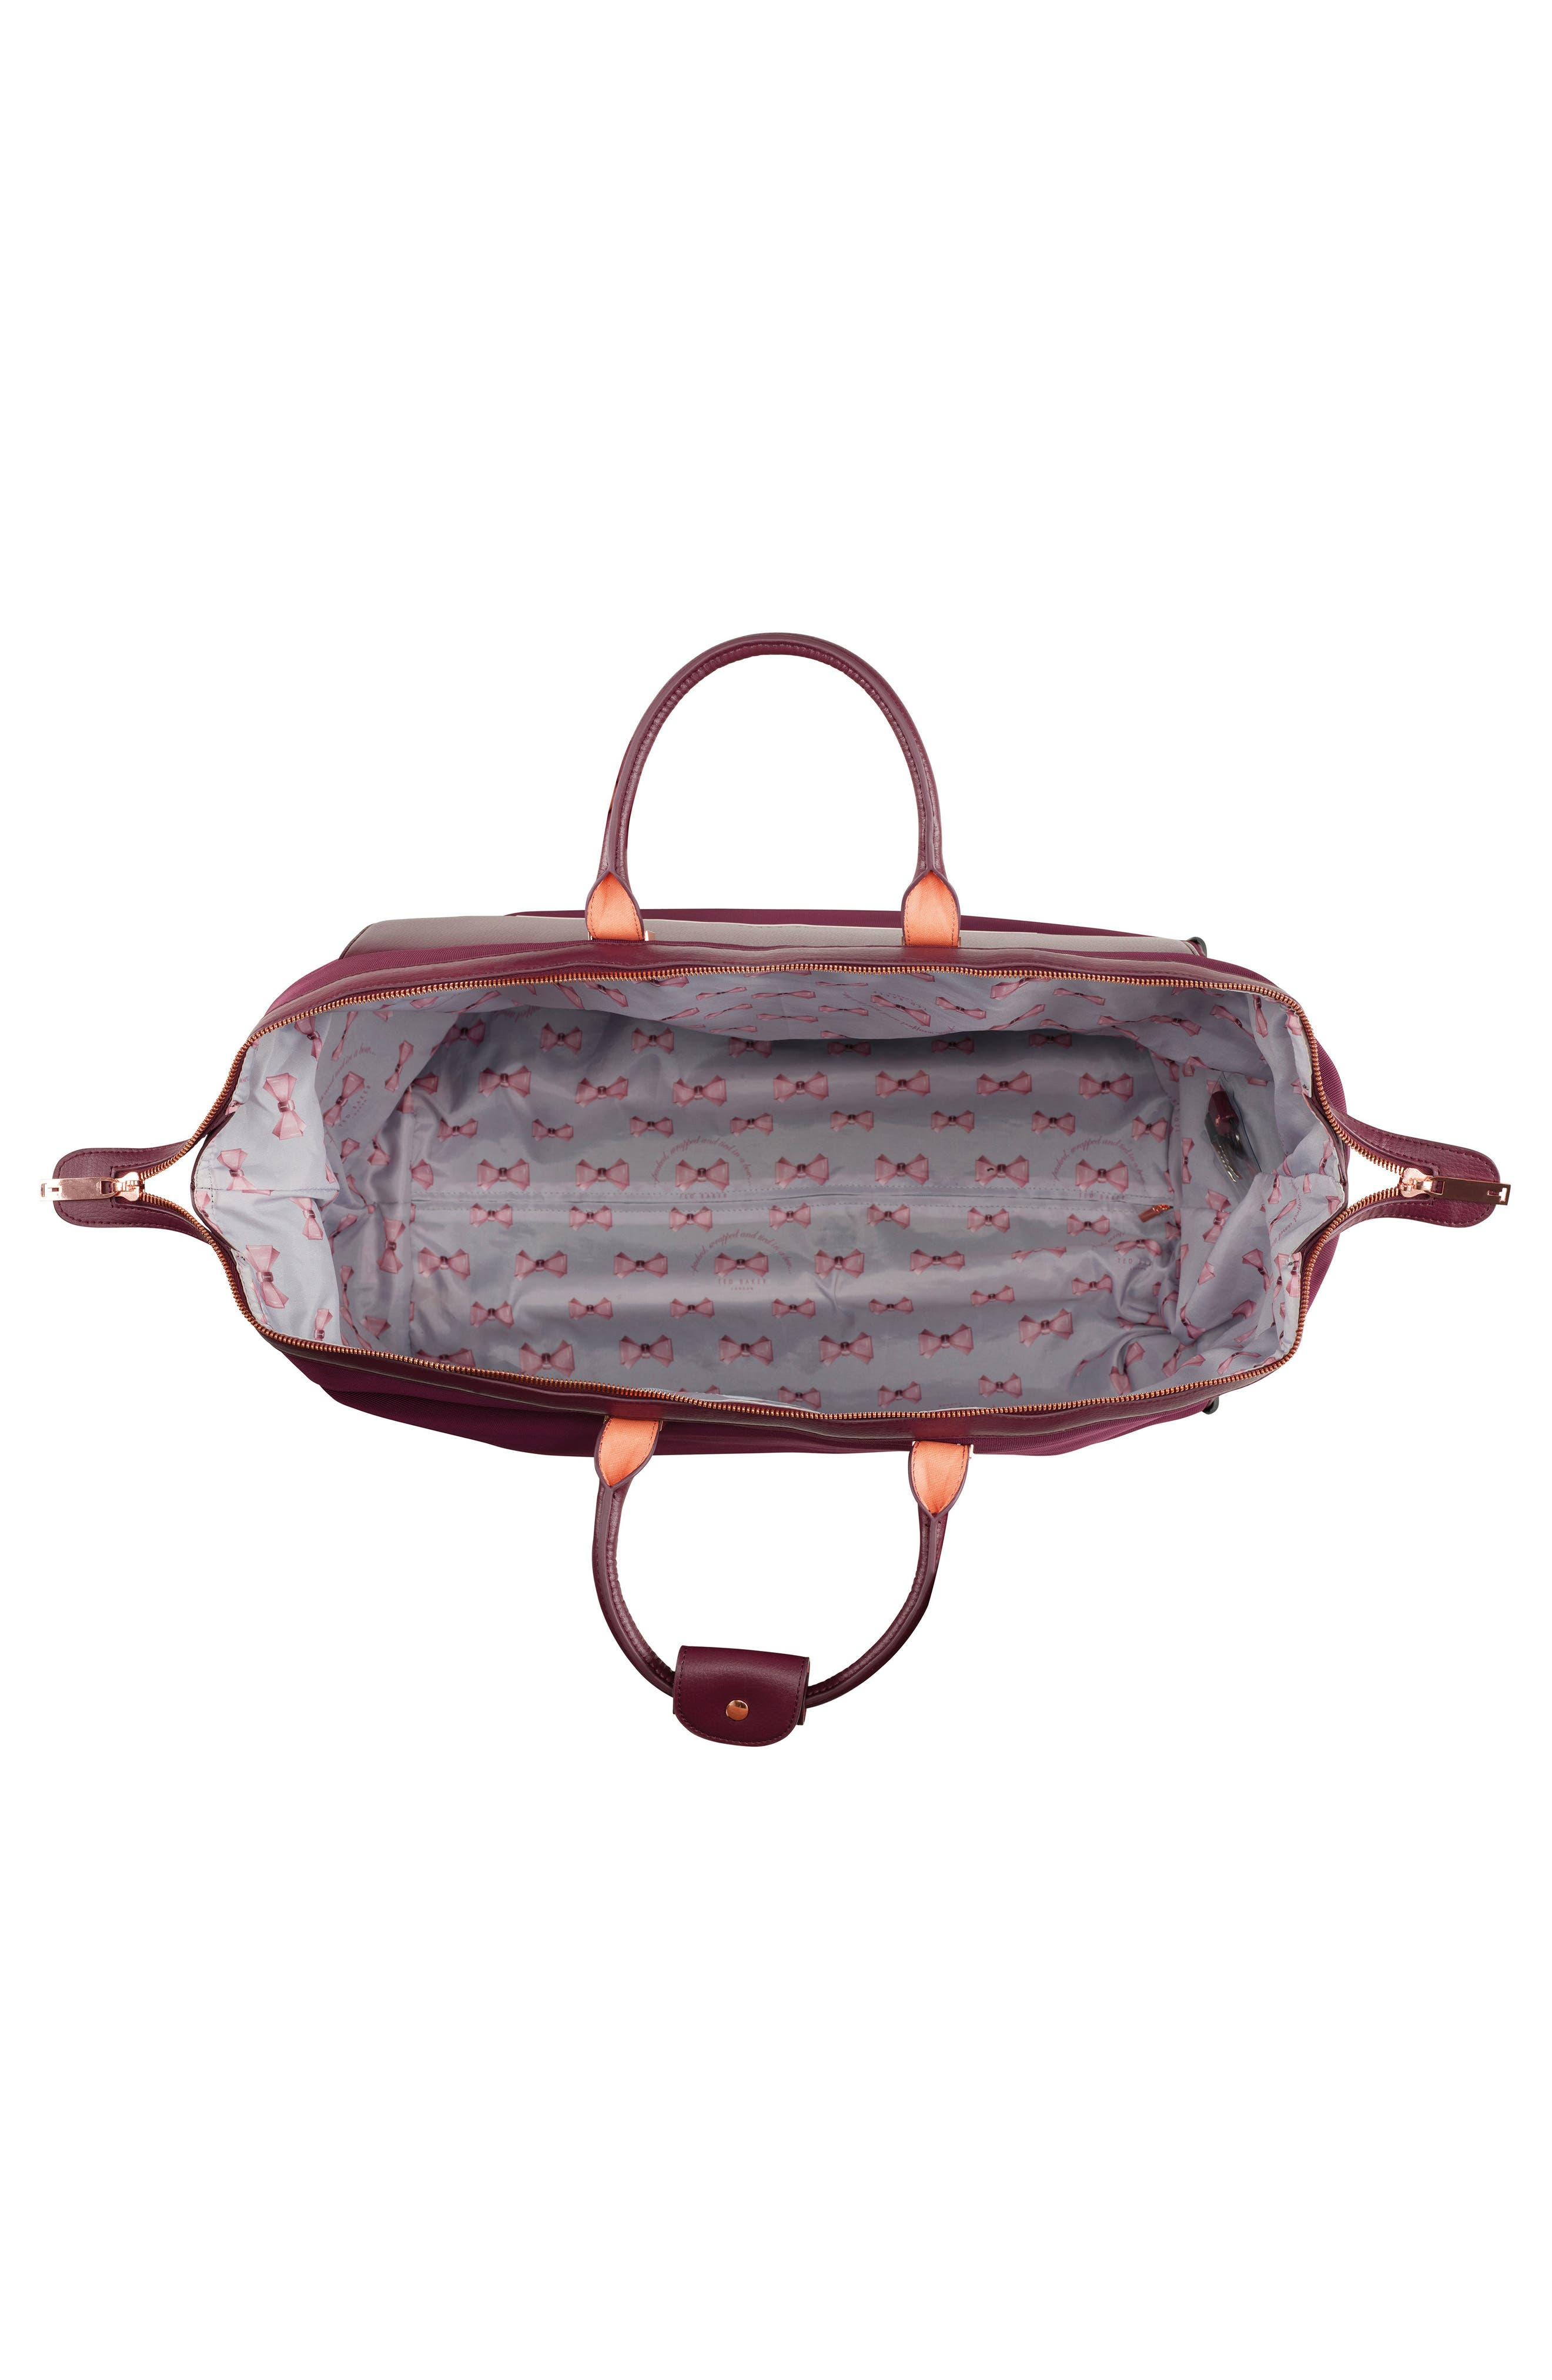 22-Inch Large Front Pocket Rolling Duffel Bag,                             Alternate thumbnail 2, color,                             BURGUNDY